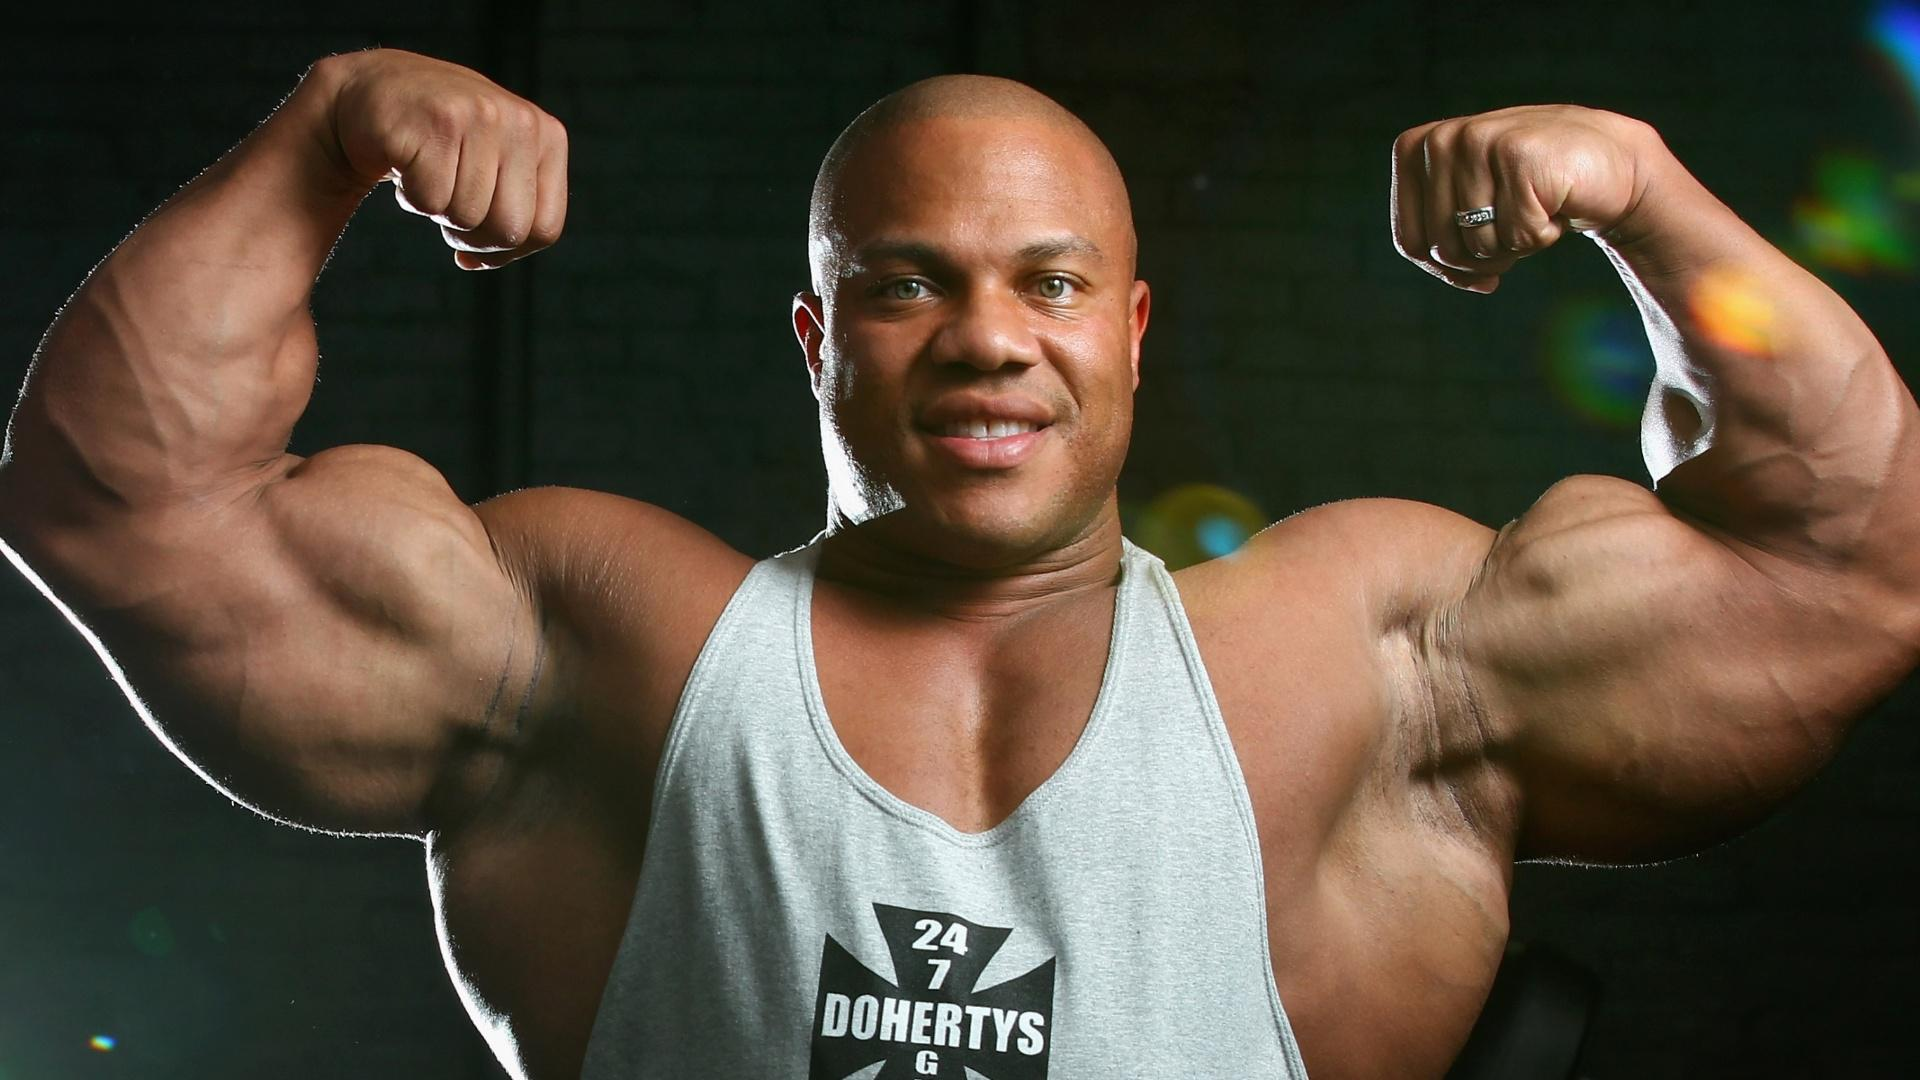 hd hintergrundbilder champion phil heath bodybuilder sportler 1920x1080